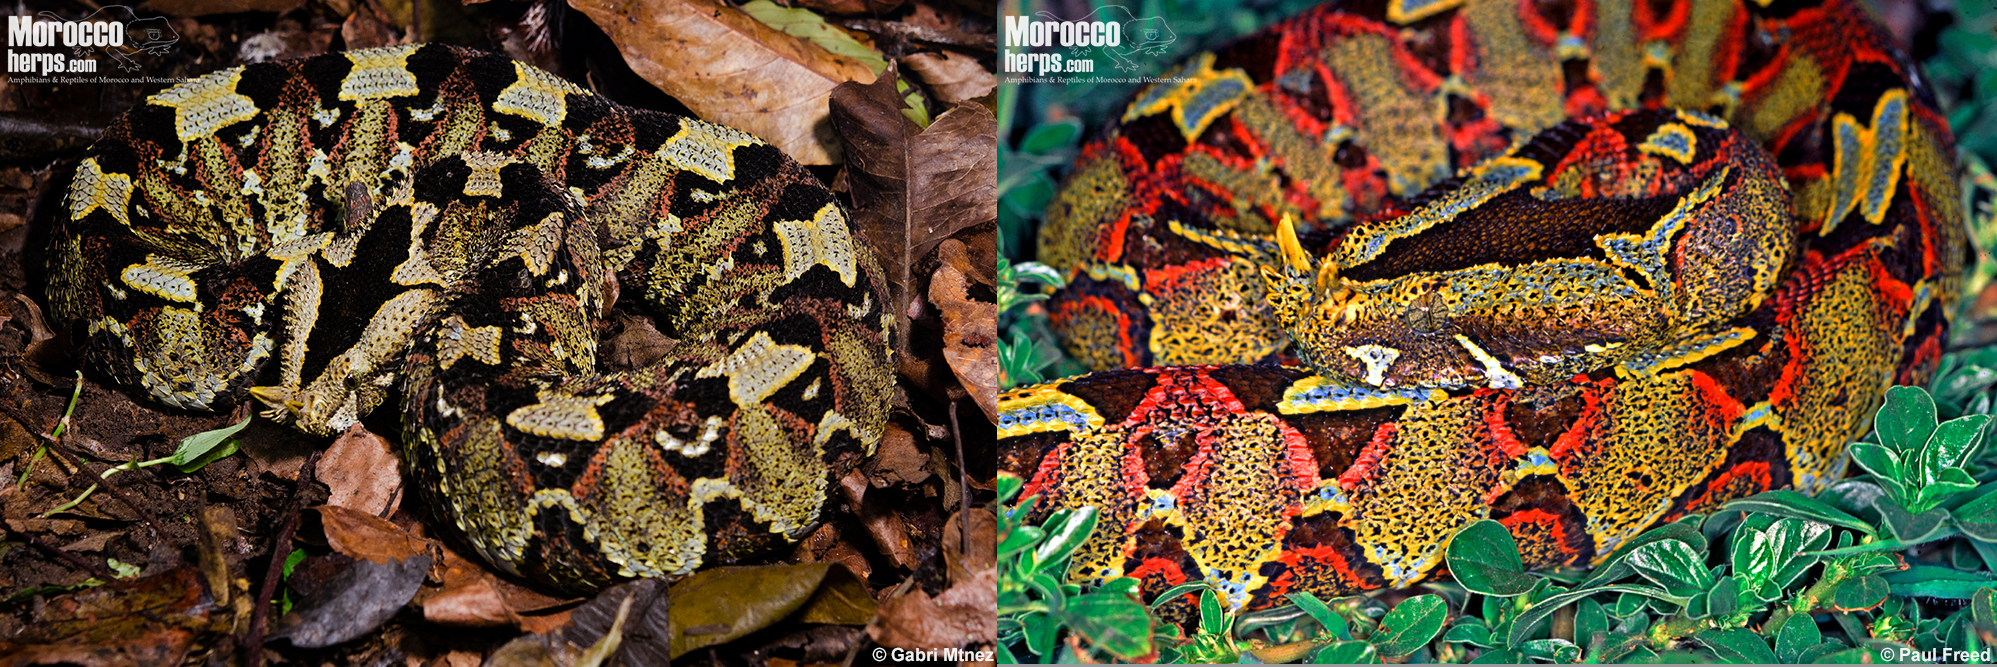 bitis-nasicornis-burundi-uganda-amazing-pattern-color-green